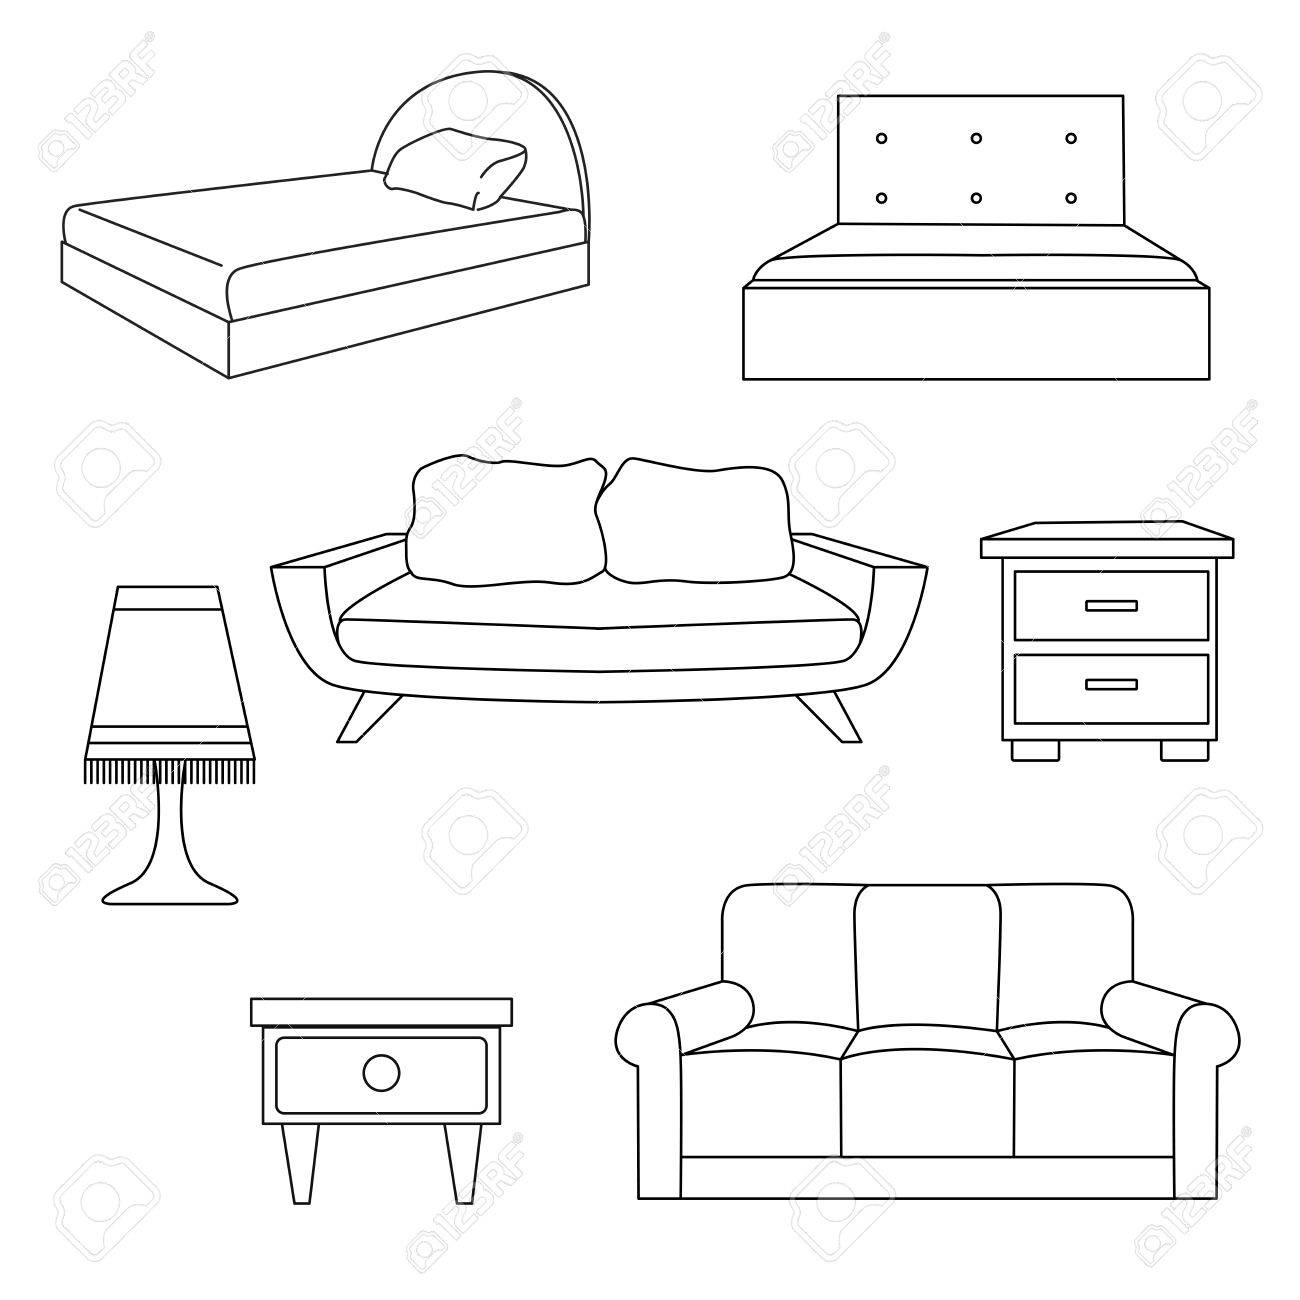 Groovy Sofa Bed Bedside Table A Lamp Isolated On White Background Unemploymentrelief Wooden Chair Designs For Living Room Unemploymentrelieforg